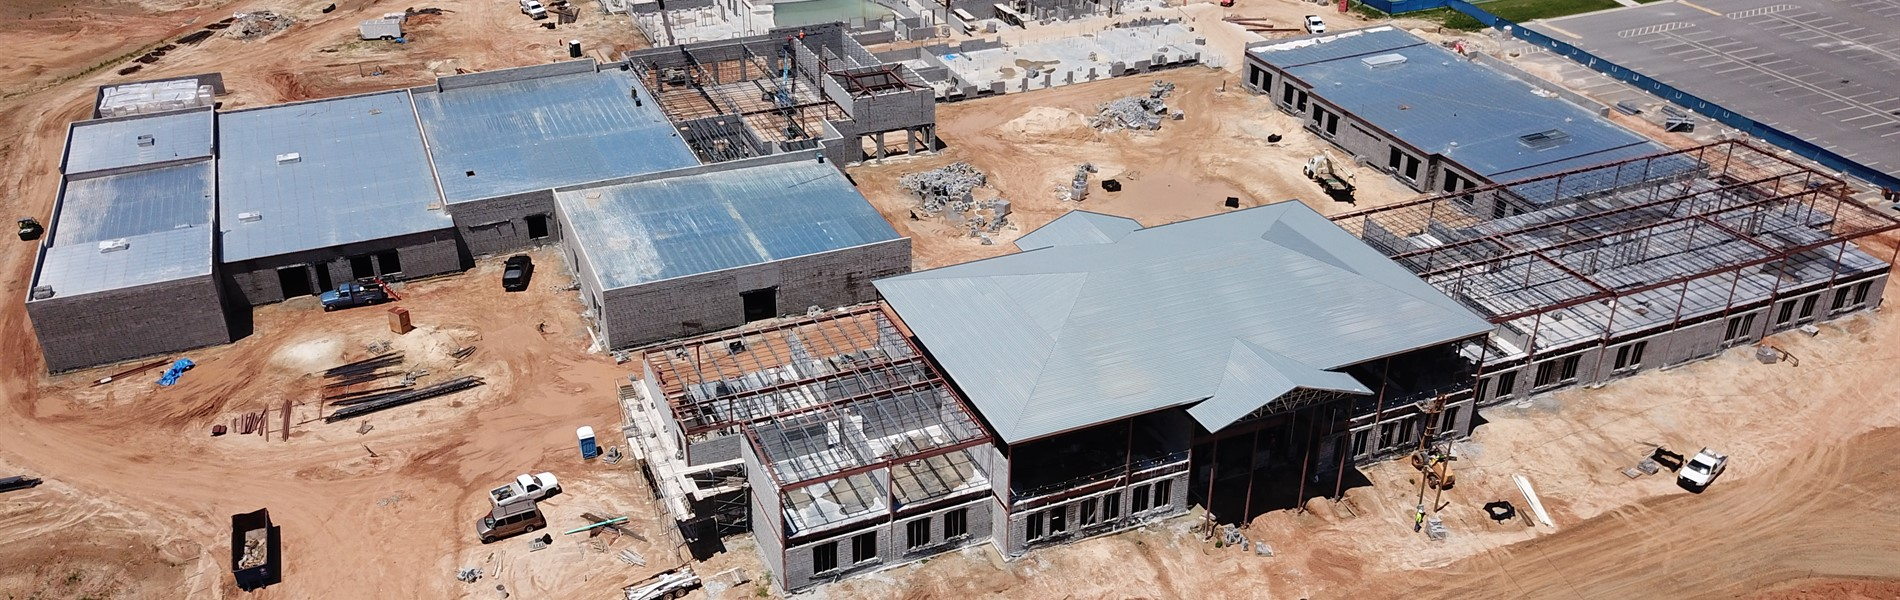 The new high school building during construction